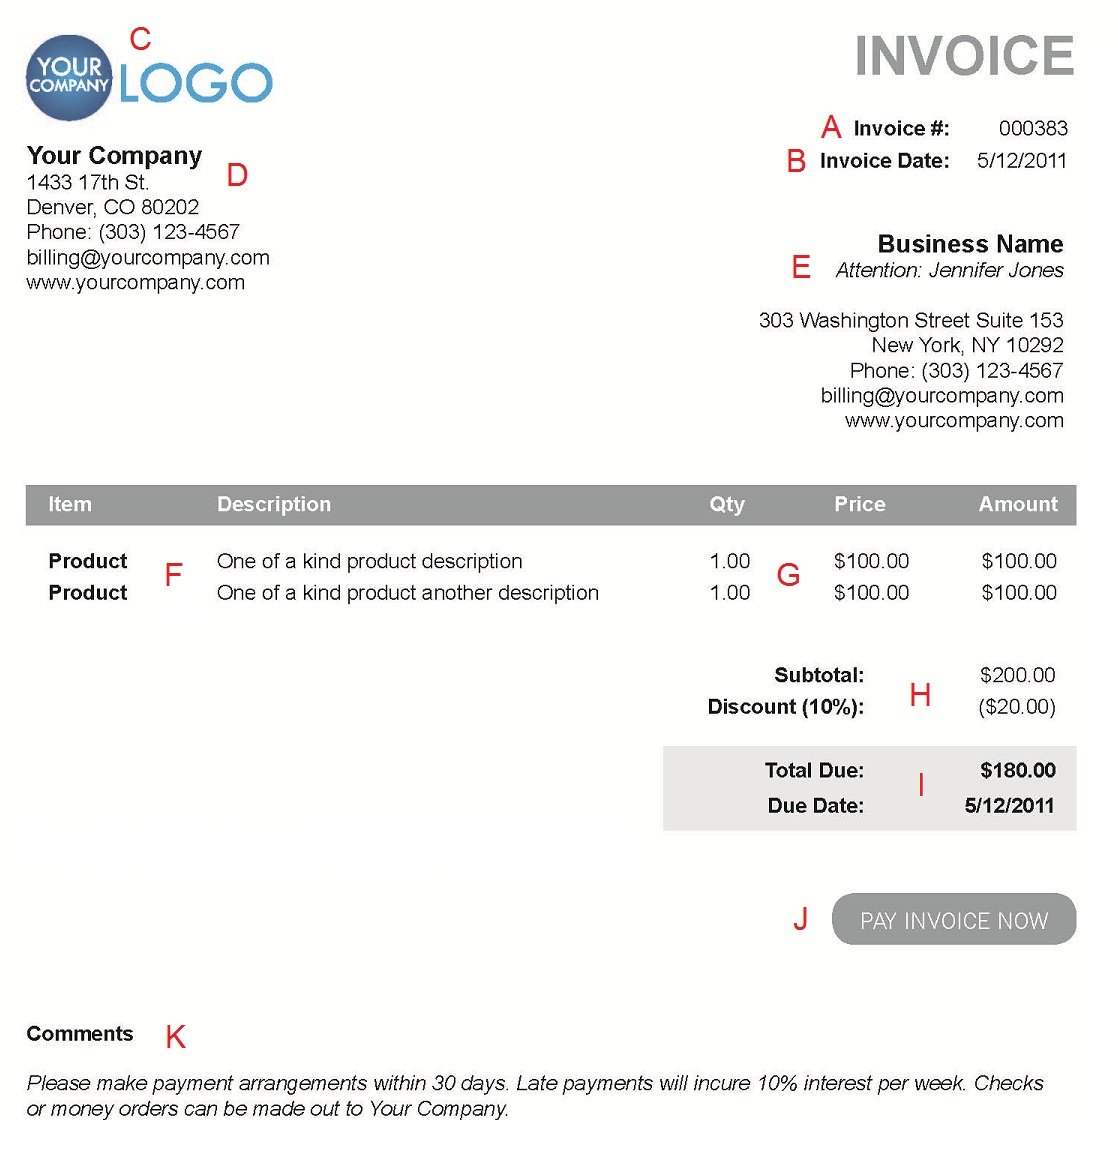 Garygrubbsus  Surprising The  Different Sections Of An Electronic Payment Invoice With Licious A  With Appealing Find Invoice Price Of New Car By Vin Also Sample Invoices With Payment Terms In Addition An Invoice Or A Invoice And Template Commercial Invoice As Well As Free Quote And Invoice Software Additionally Consultant Billing Invoice From Paysimplecom With Garygrubbsus  Licious The  Different Sections Of An Electronic Payment Invoice With Appealing A  And Surprising Find Invoice Price Of New Car By Vin Also Sample Invoices With Payment Terms In Addition An Invoice Or A Invoice From Paysimplecom